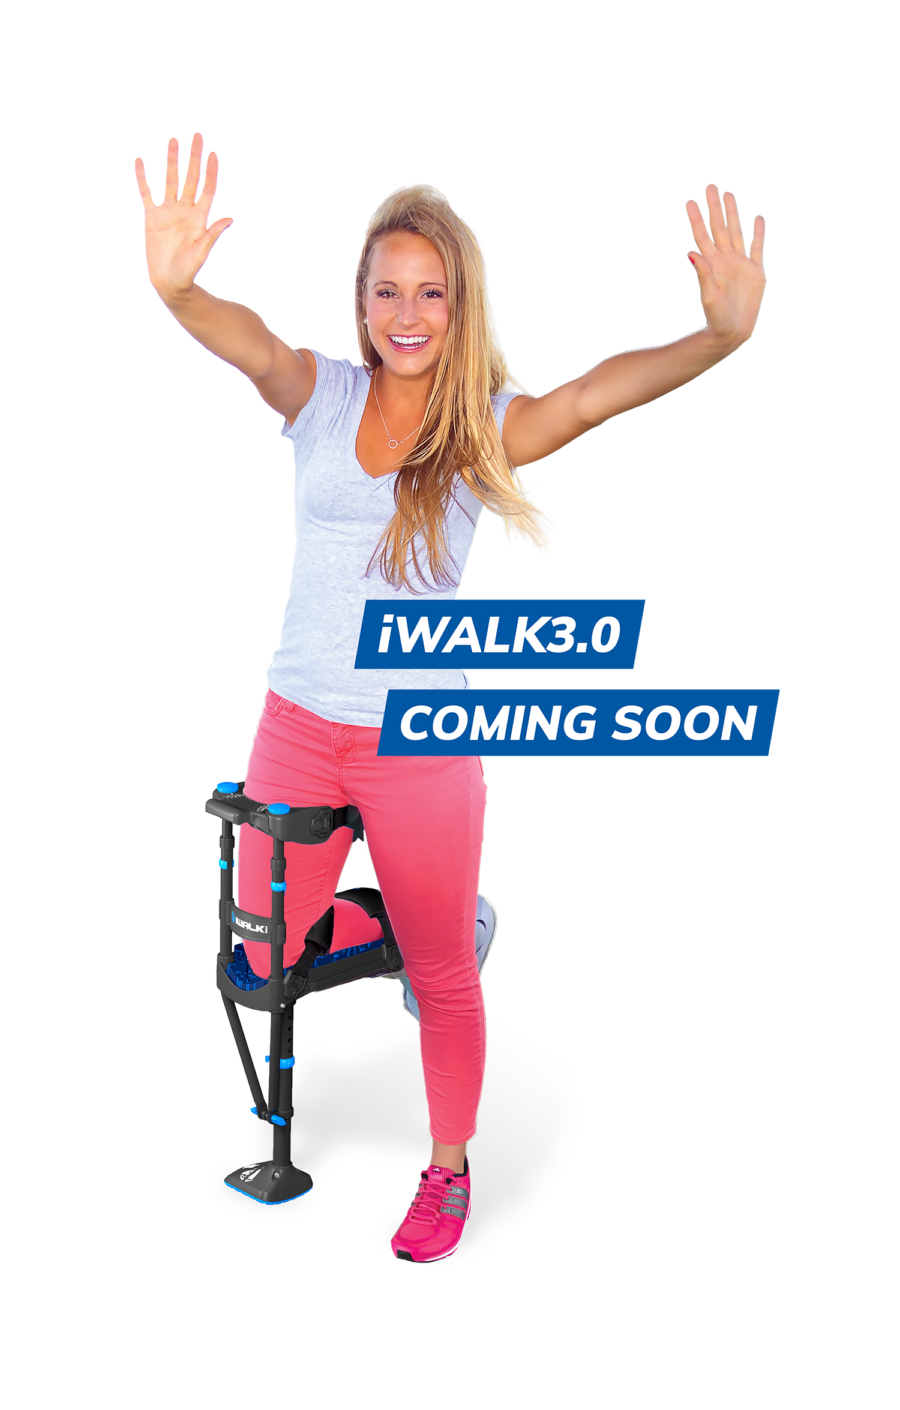 female using iwalk3 hands free crutch with 'coming soon' label